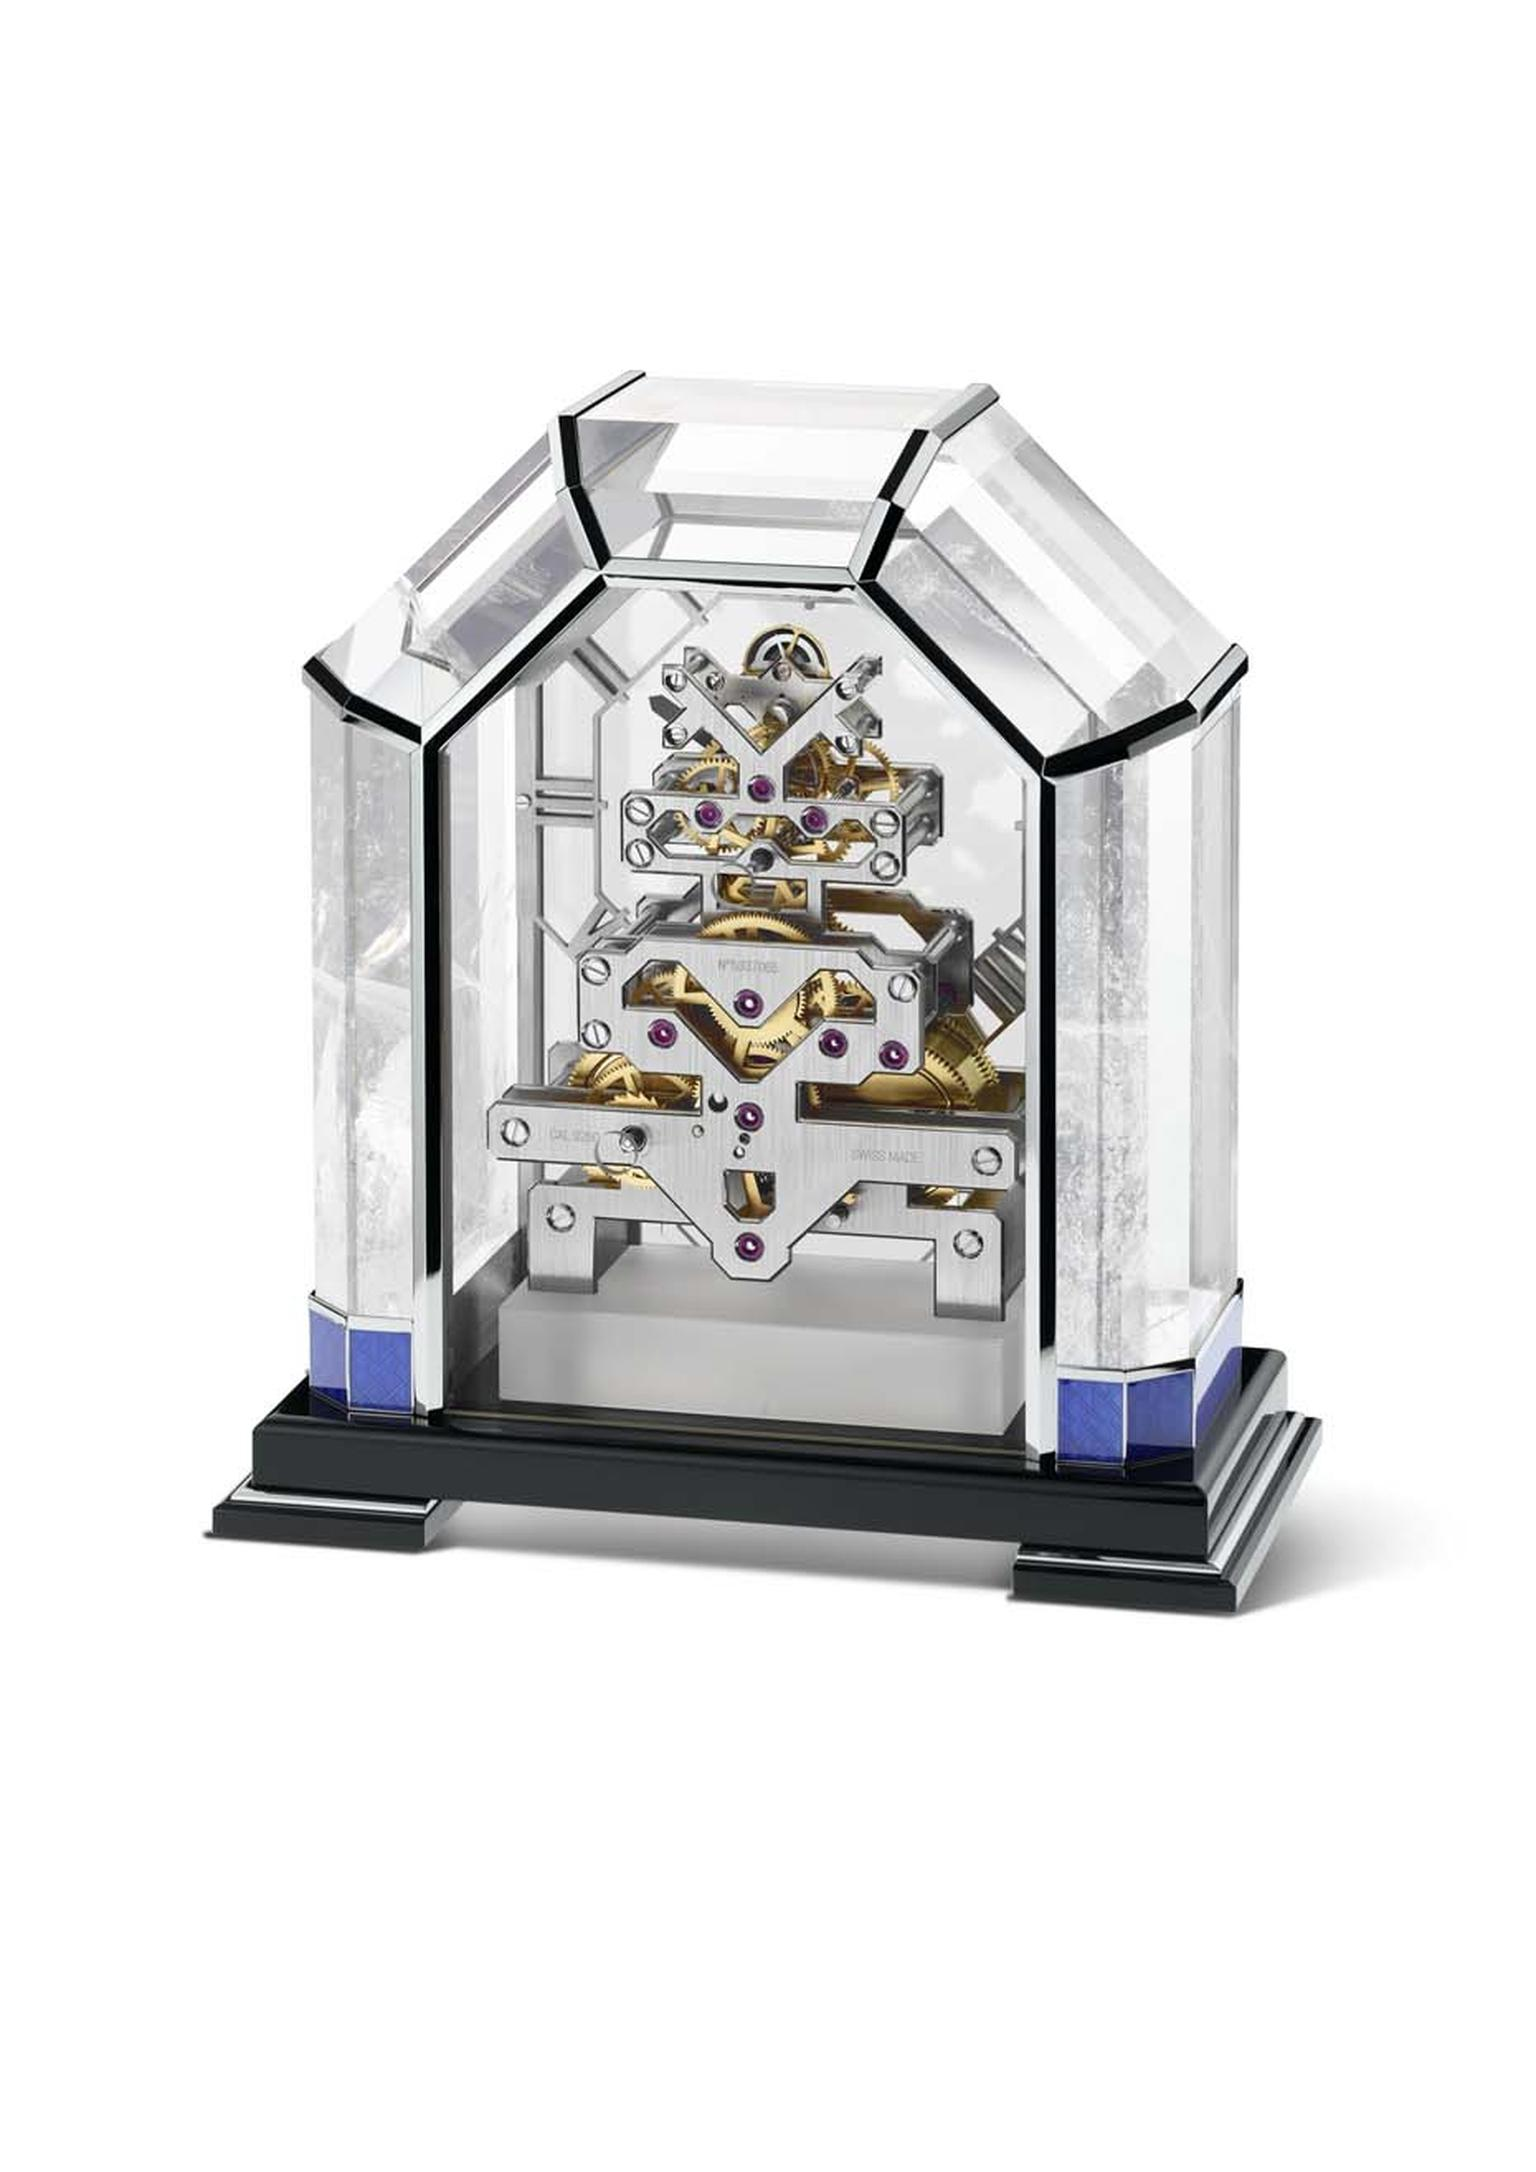 The Vacheron Constantin Arca table clock required the dexterity of a master stonecutter and a master glassmaker to reveal the intrinsic beauty of the rock crystal. Sitting on an obsidian plinth, the piers of the arch feature blue Grand Feu enamelling and